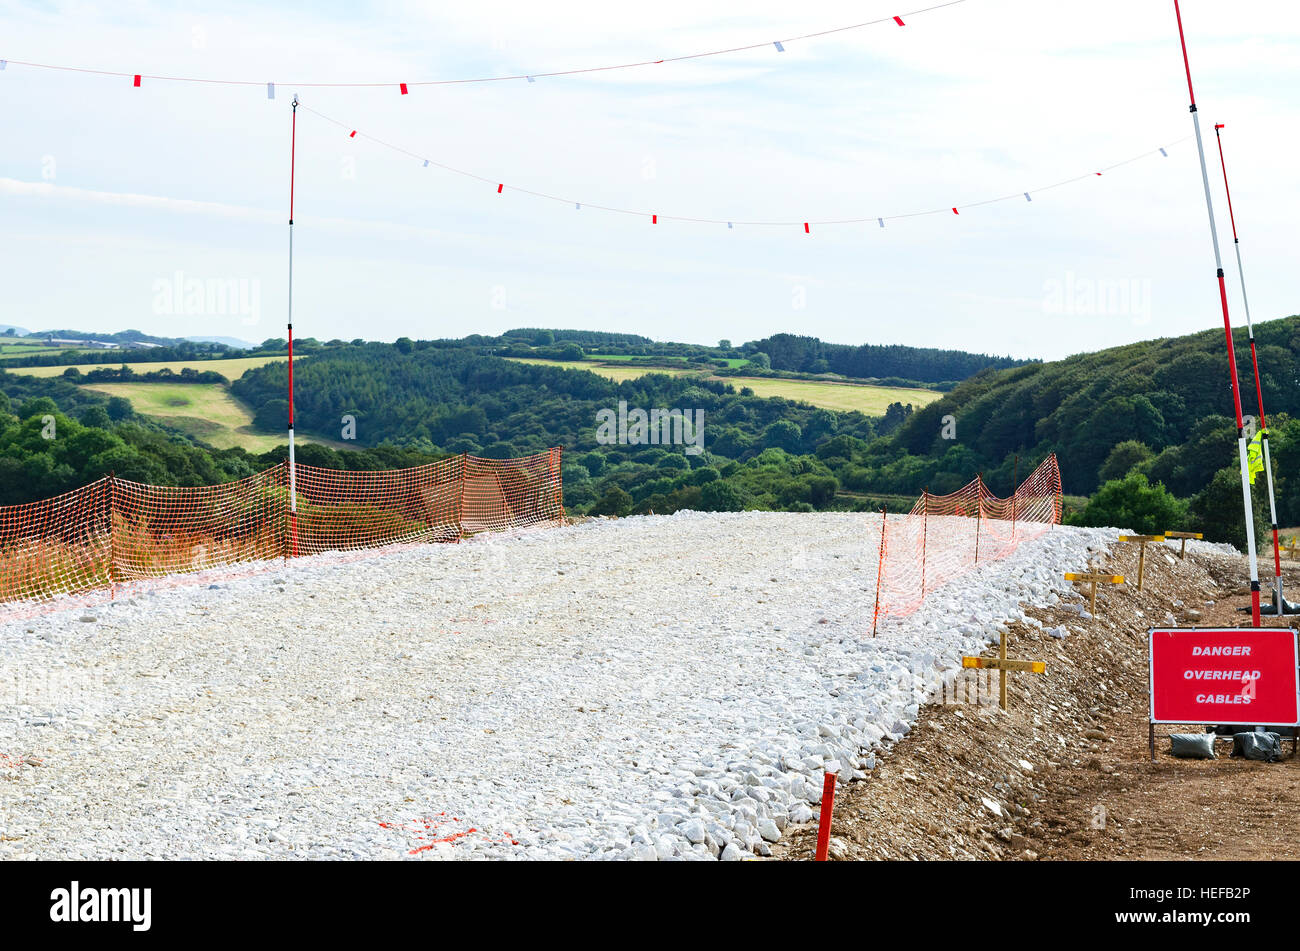 A new road construction on greenbelt land near Truro in Cornwall, UK - Stock Image